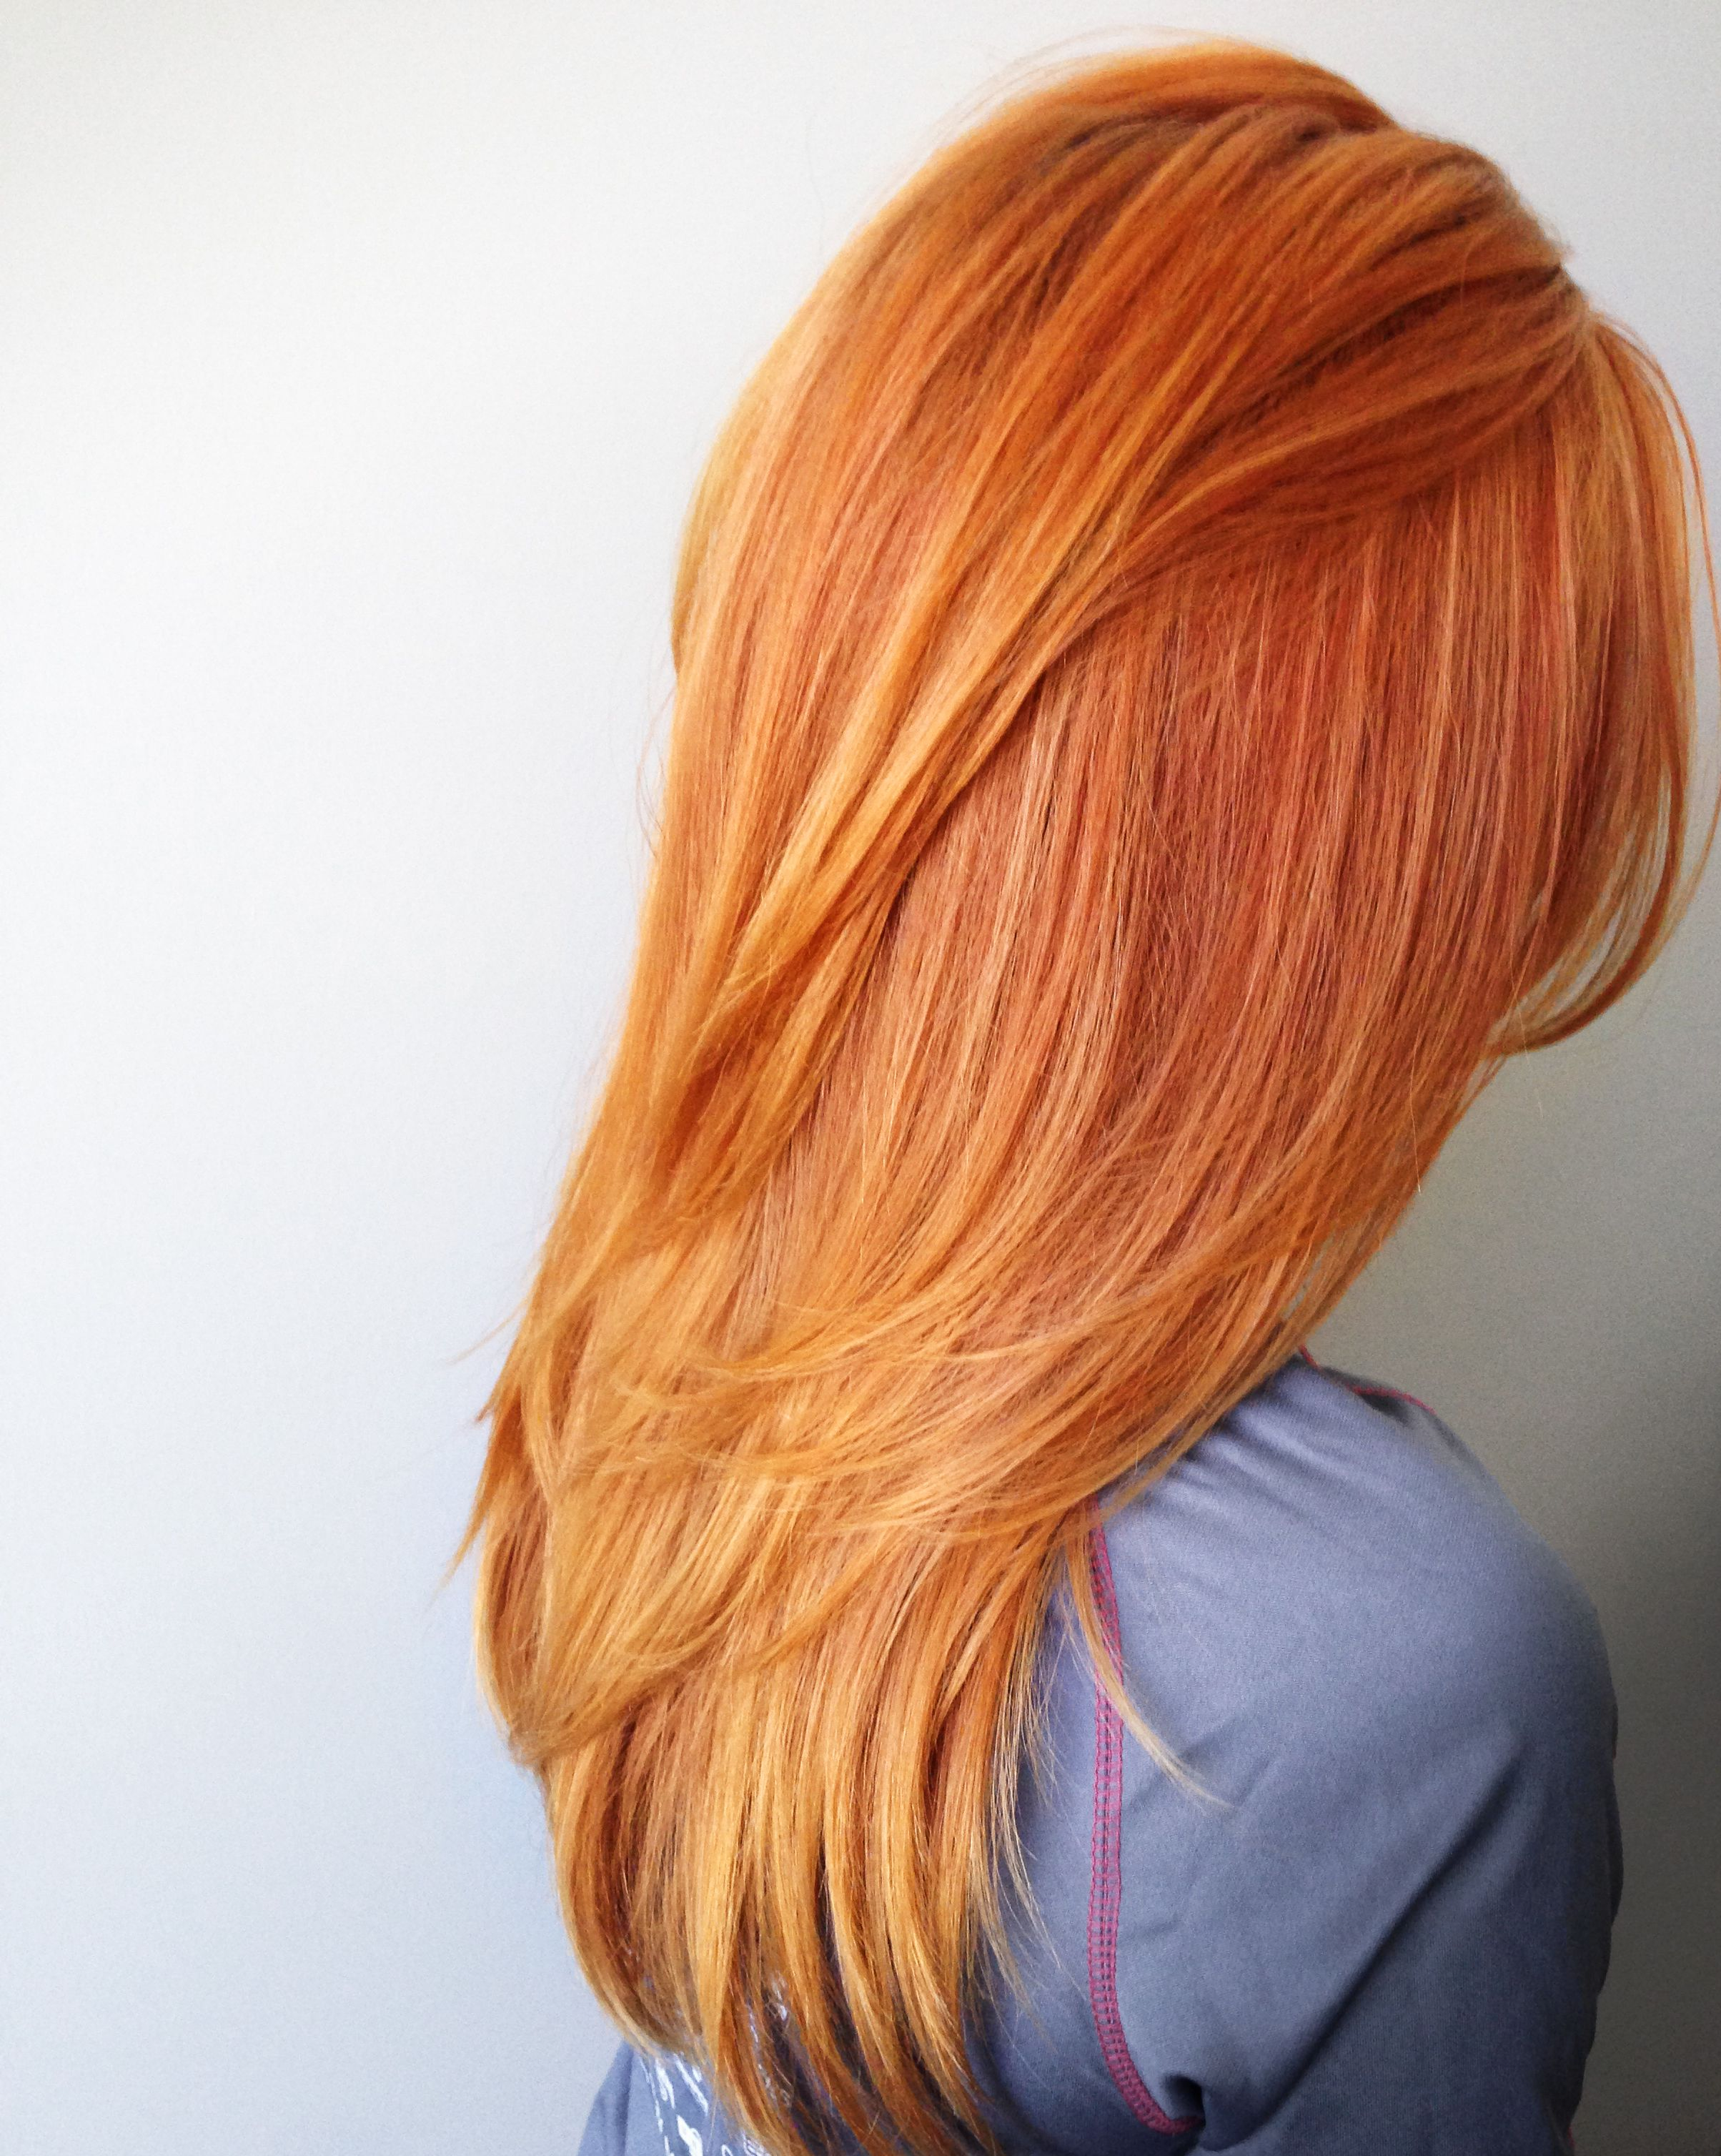 I want to an ombre dye like this So hard to find a nice ombre